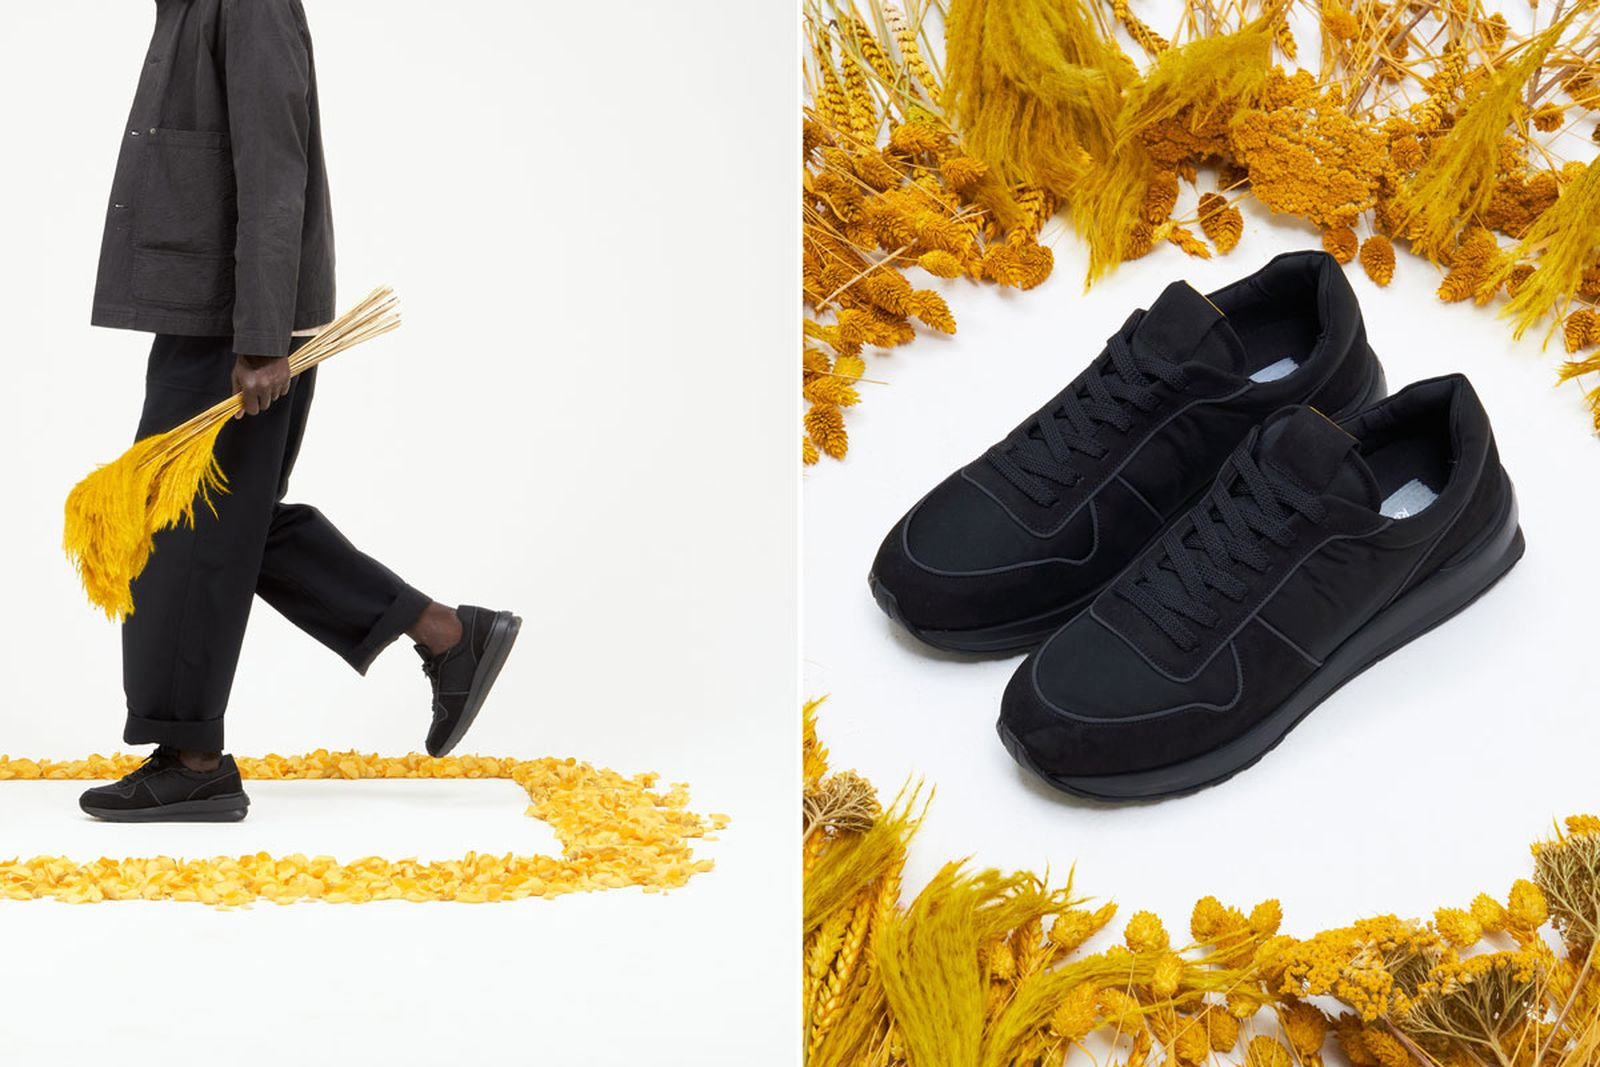 Roscomar-AW21lookbook-slides-low-res3